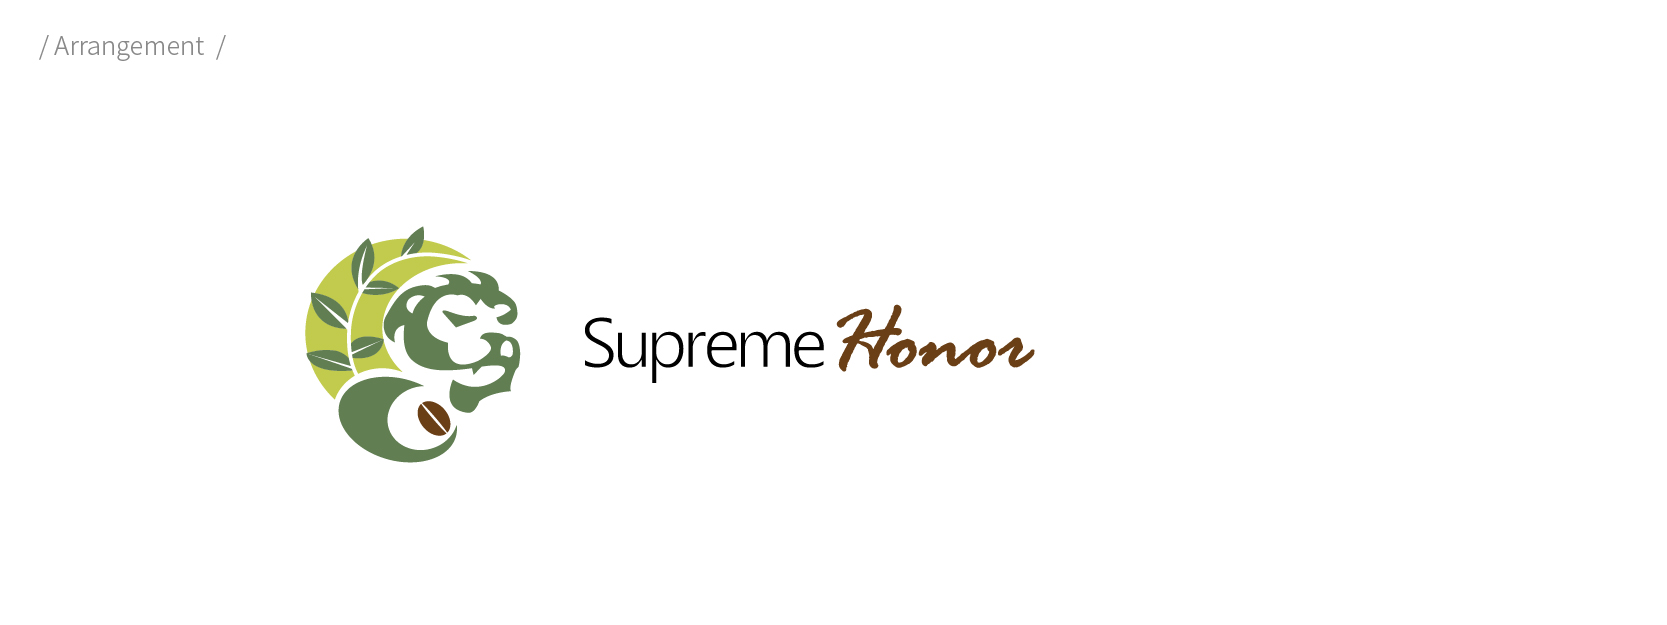 Supreme Honor 03